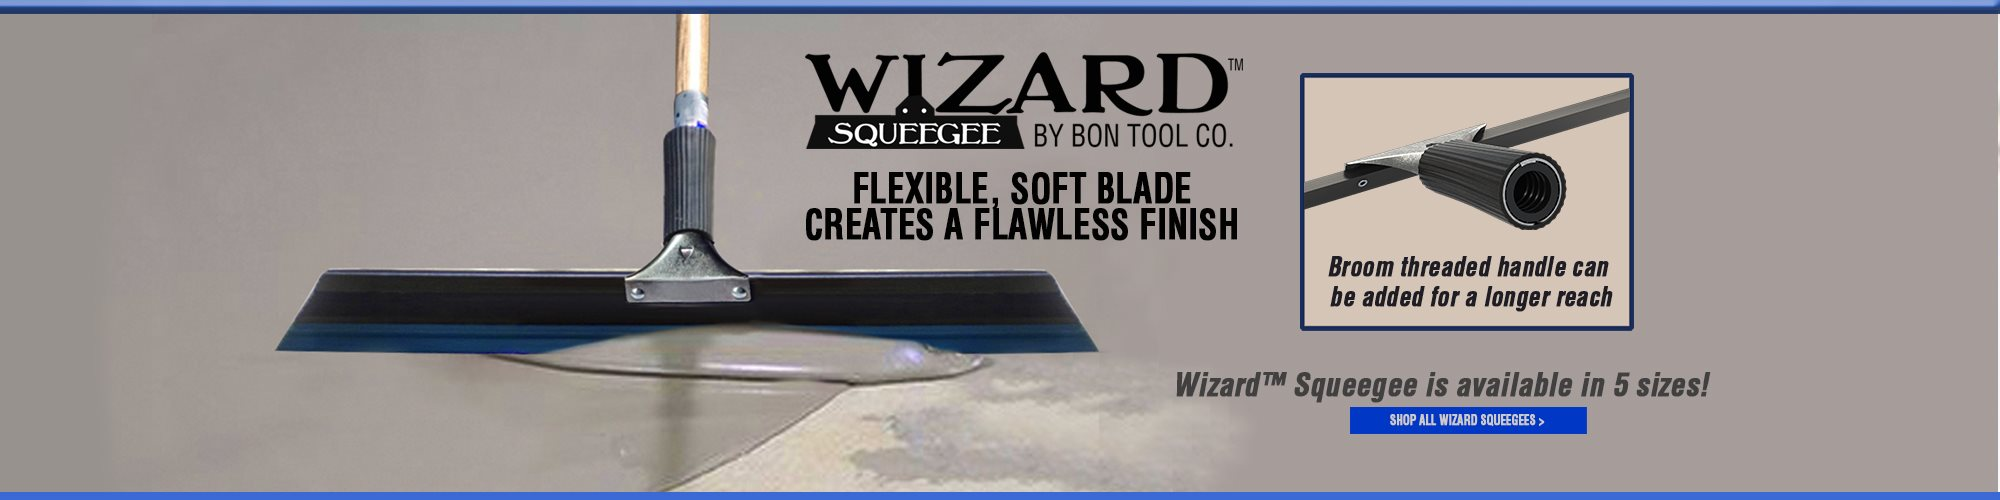 Wizard Squeegee